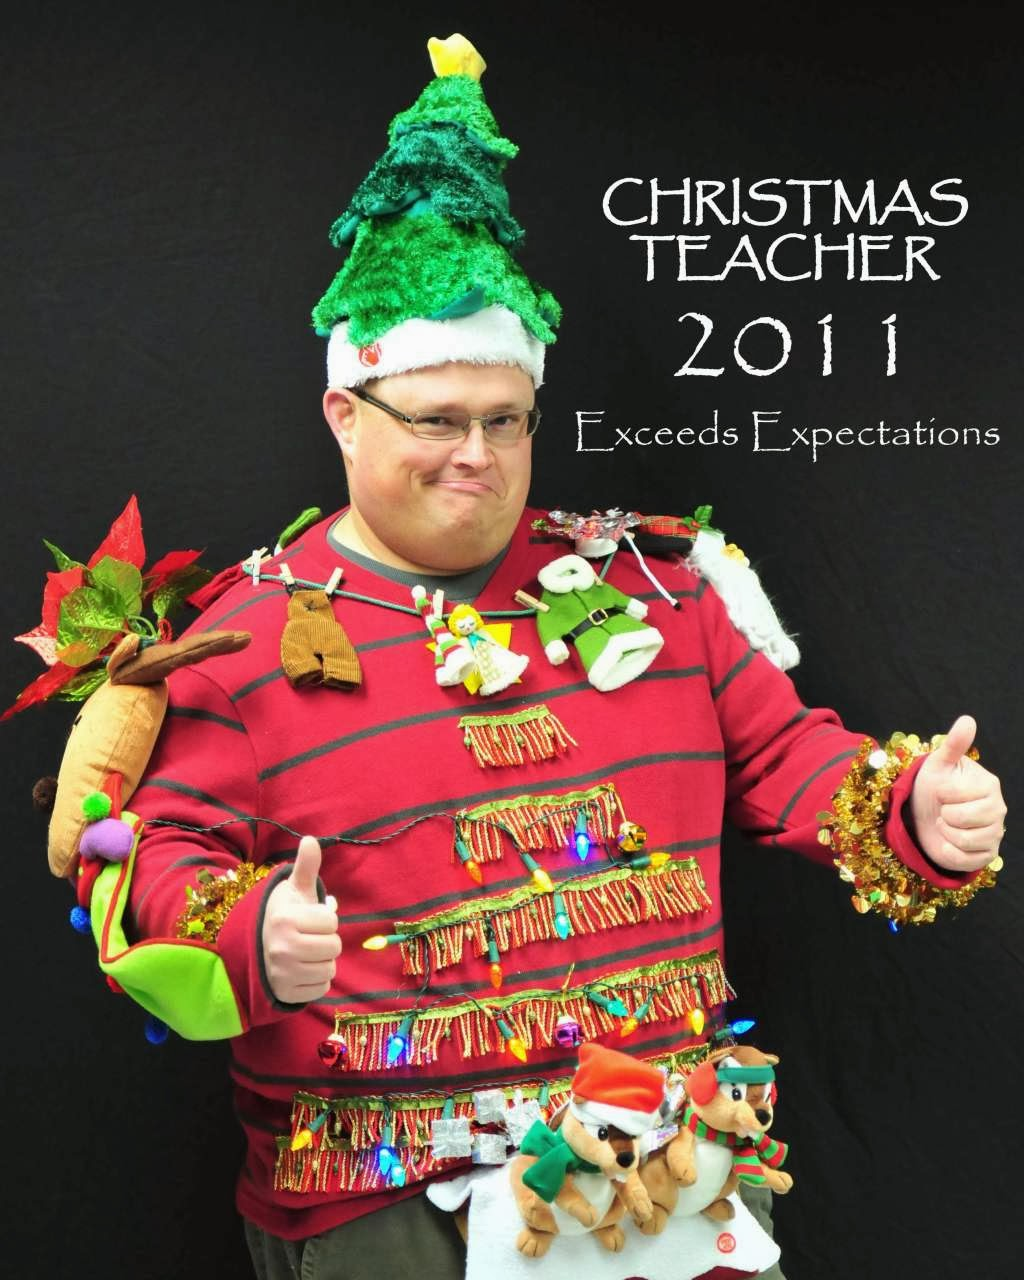 ugliest Christmas fashion